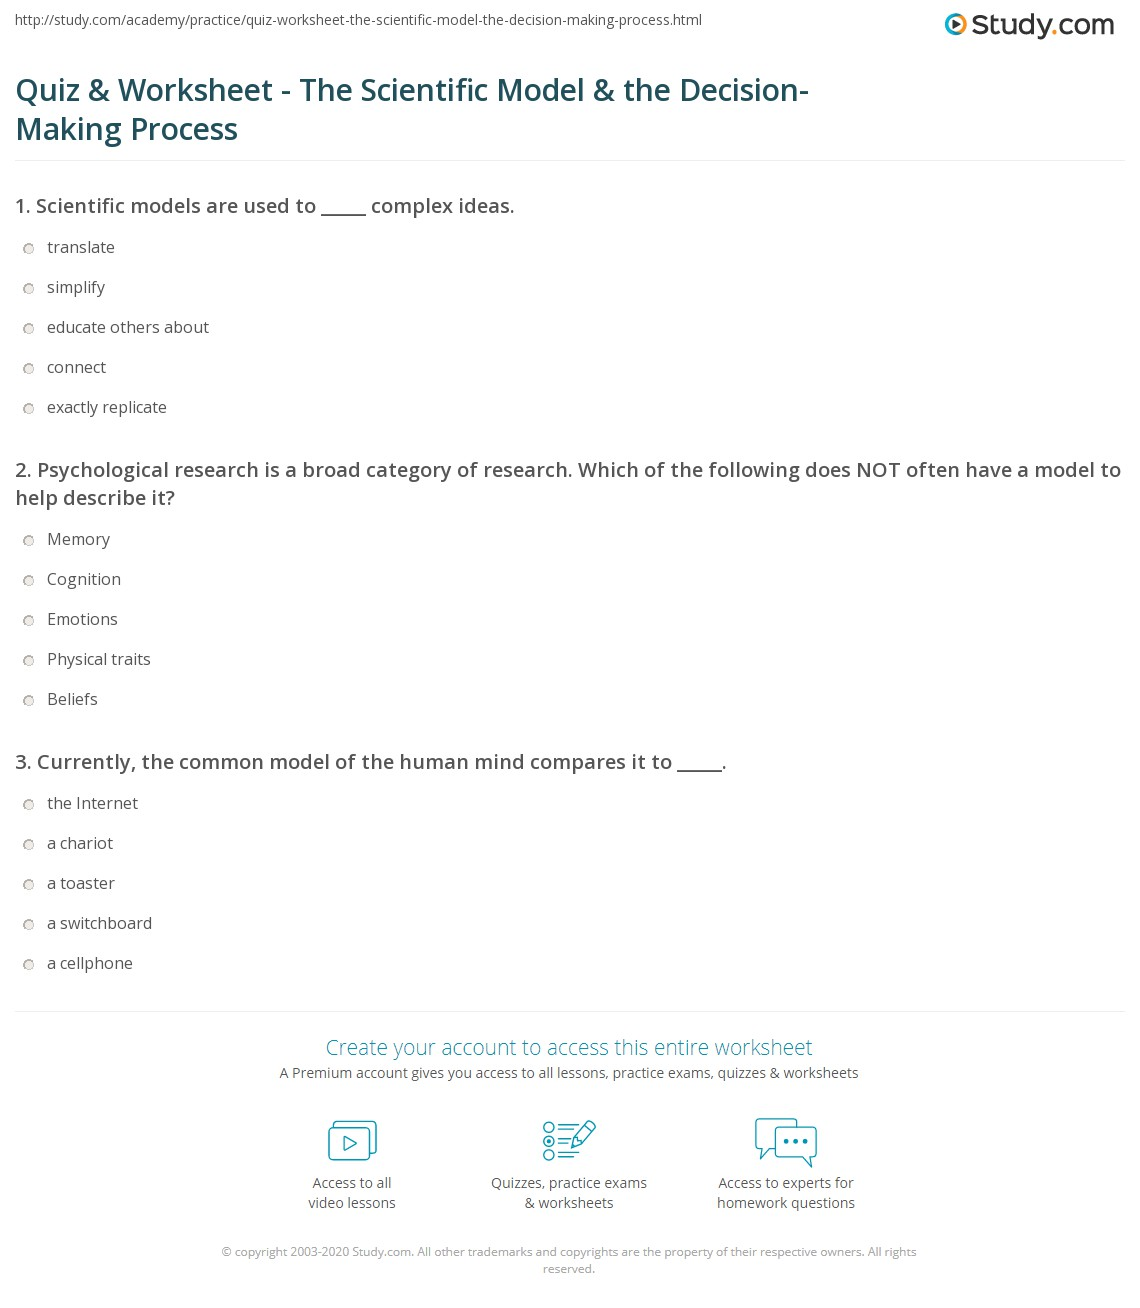 Printables Science Process Skills Worksheets quiz worksheet the scientific model decision making print applying to process worksheet